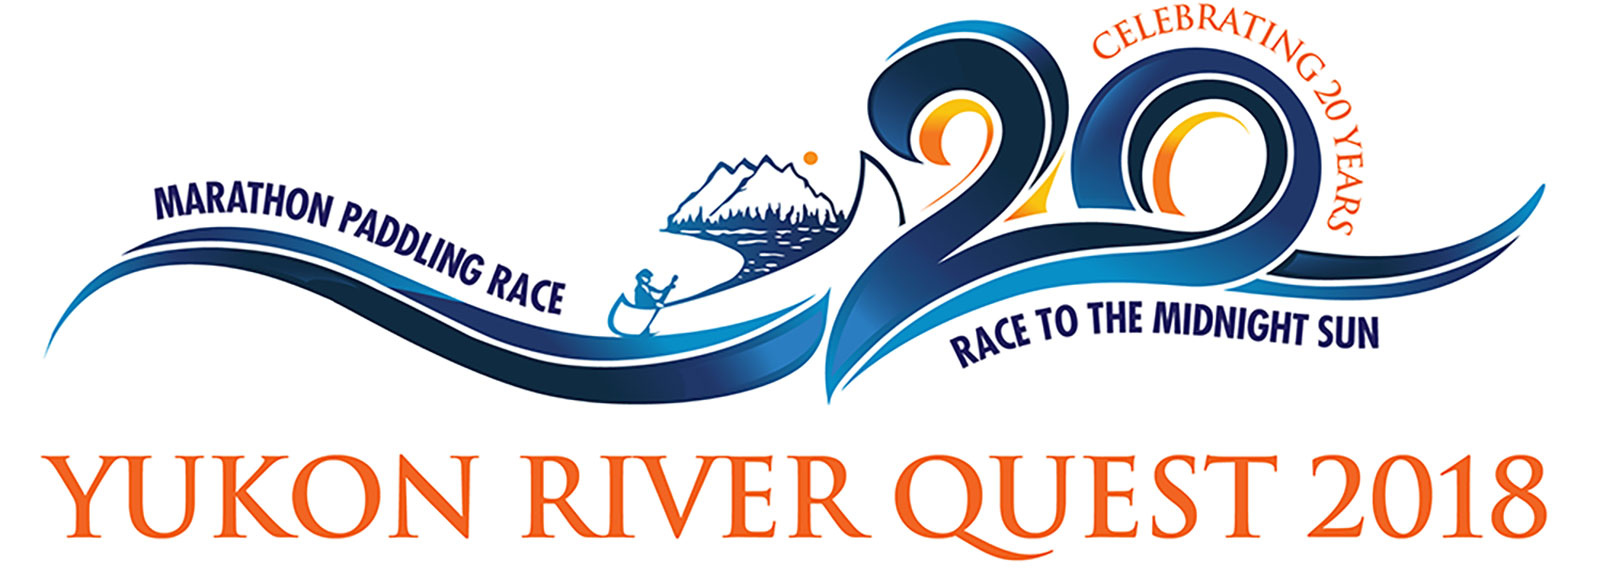 20th anniversary yukon river quest